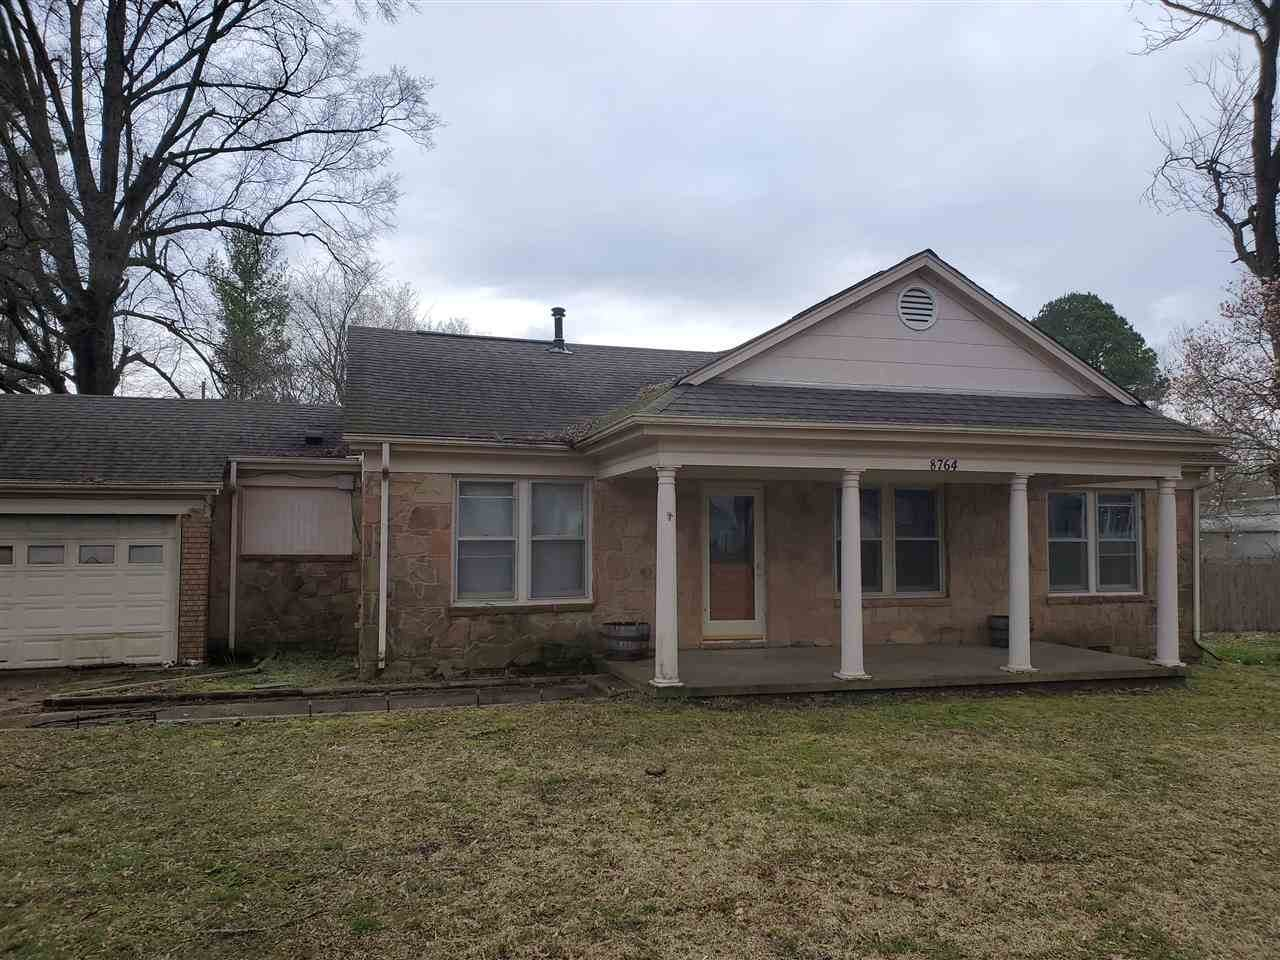 8764 Old Brownsville Rd - Photo 1